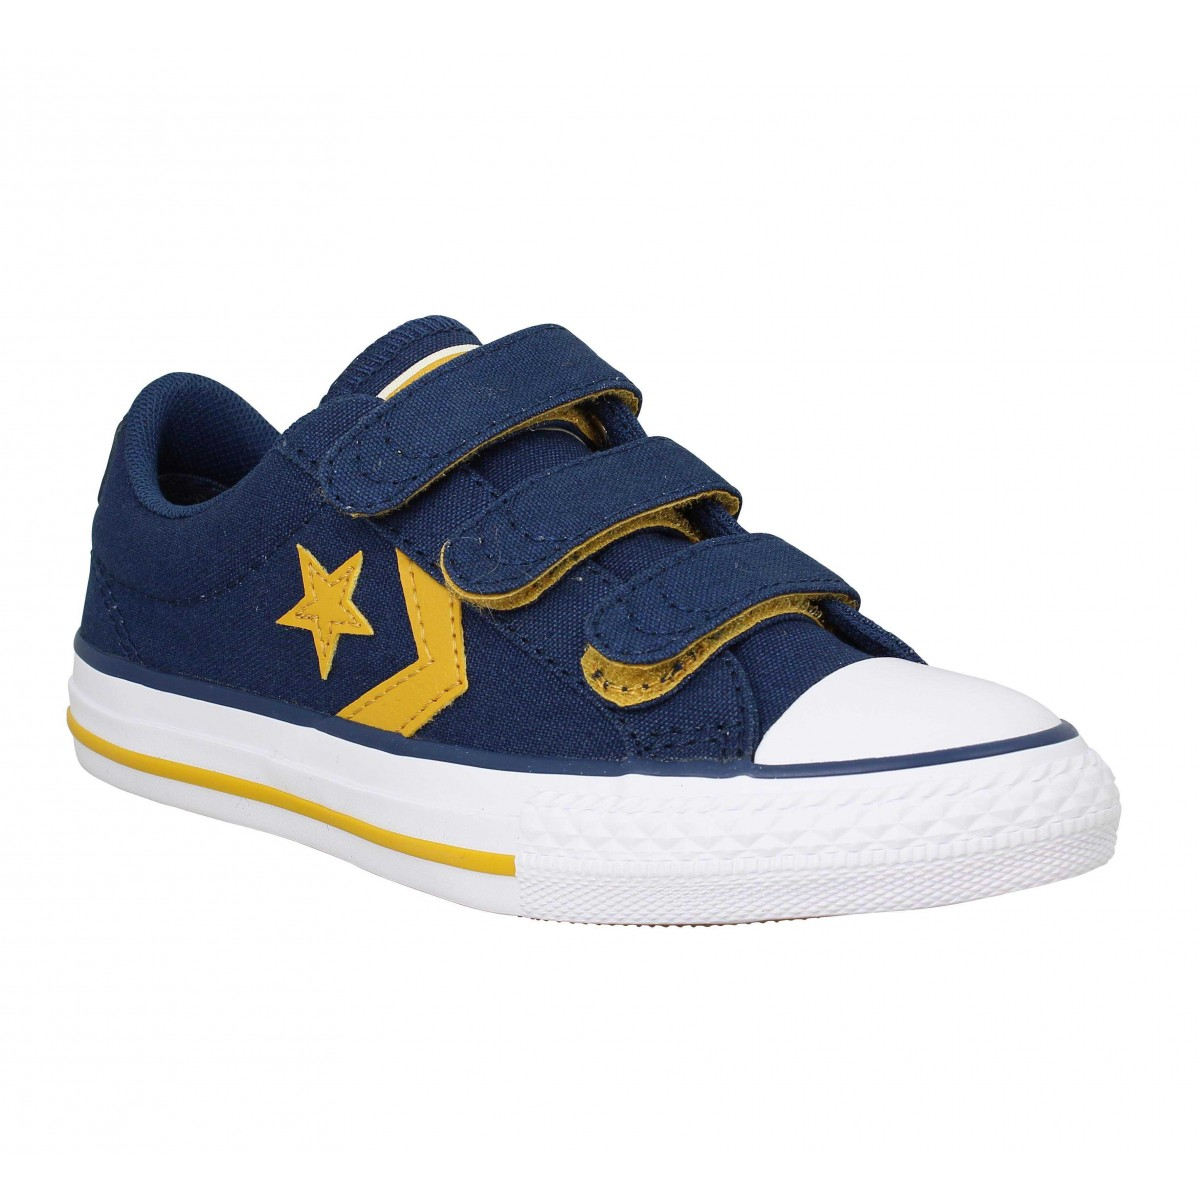 Baskets CONVERSE Star Player 3V toile Enfant Navy